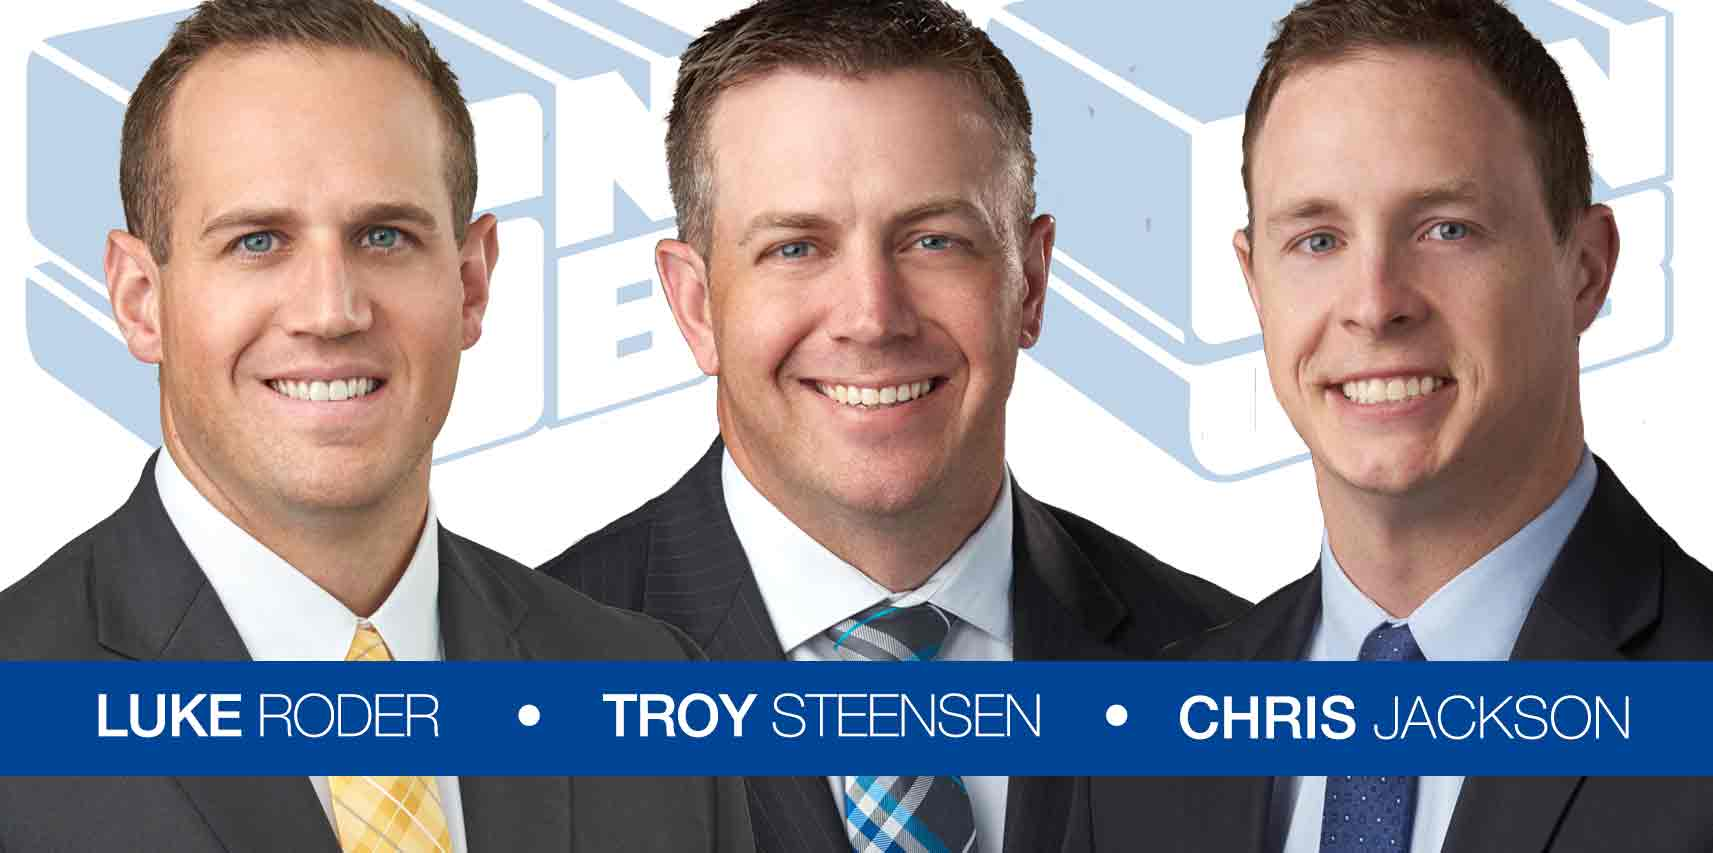 Luke Roder, Troy Steensen and Chris Jackson